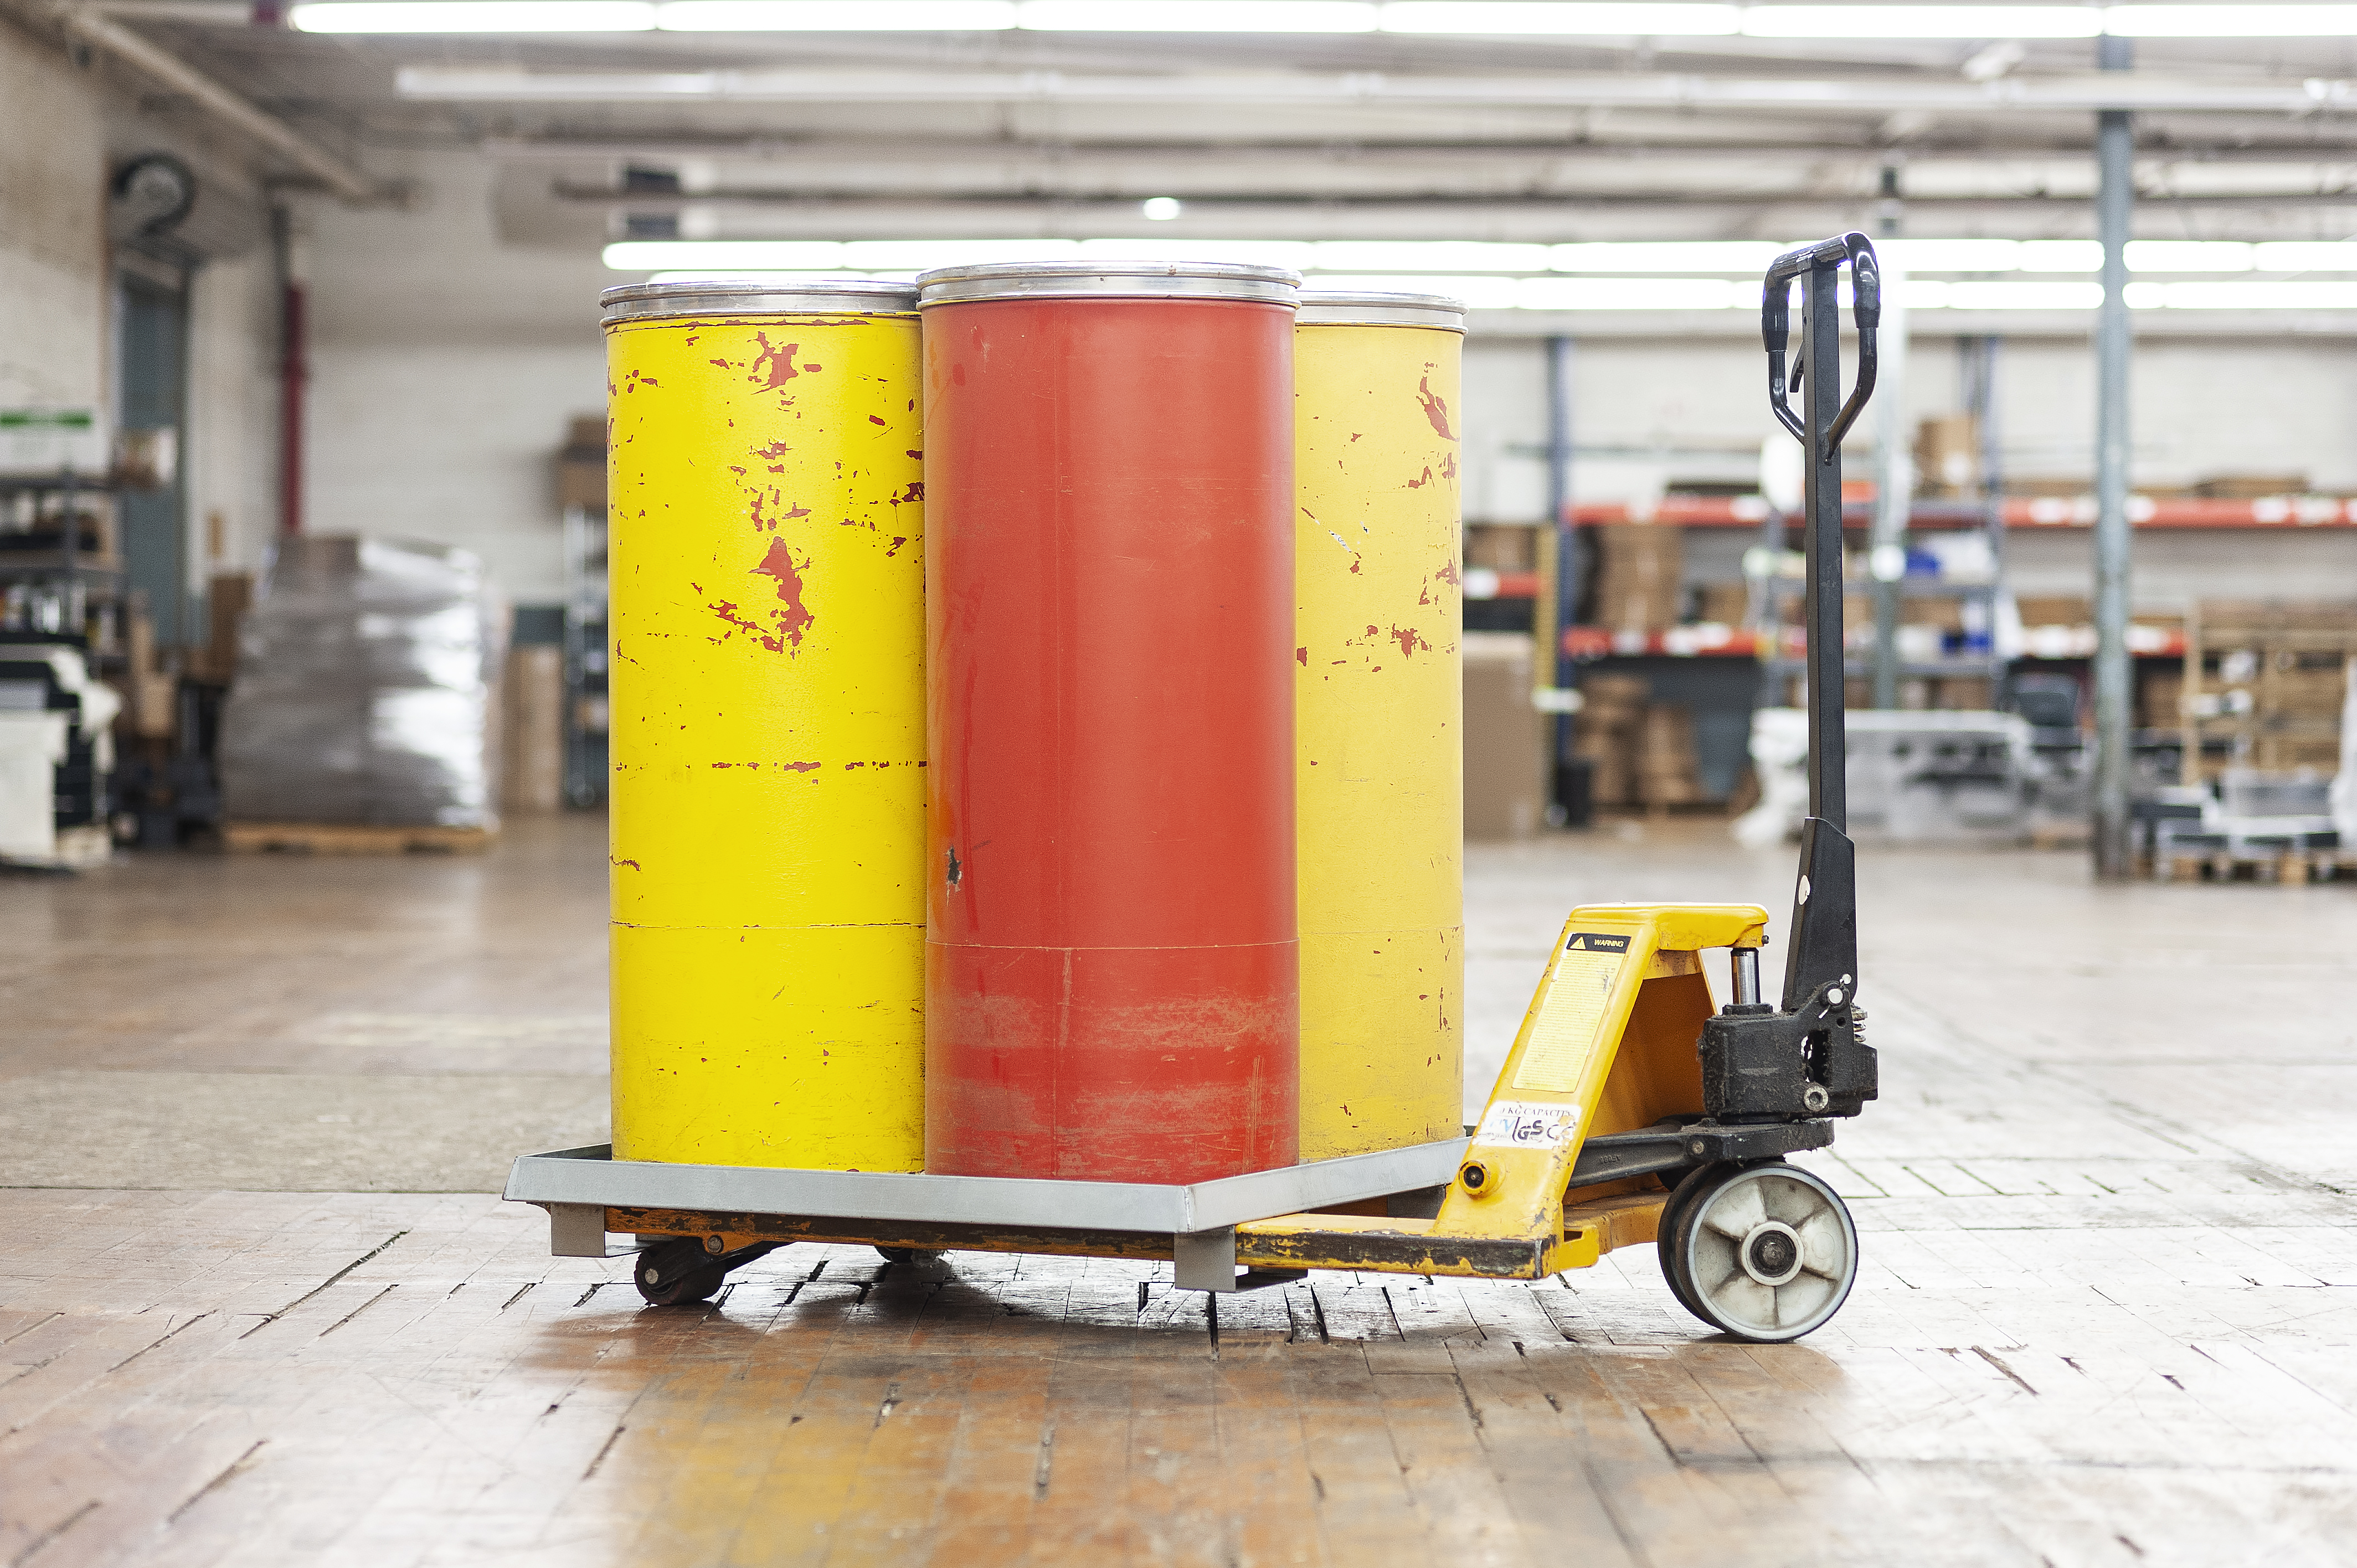 Forklift Pallet Drip Pan with Drums